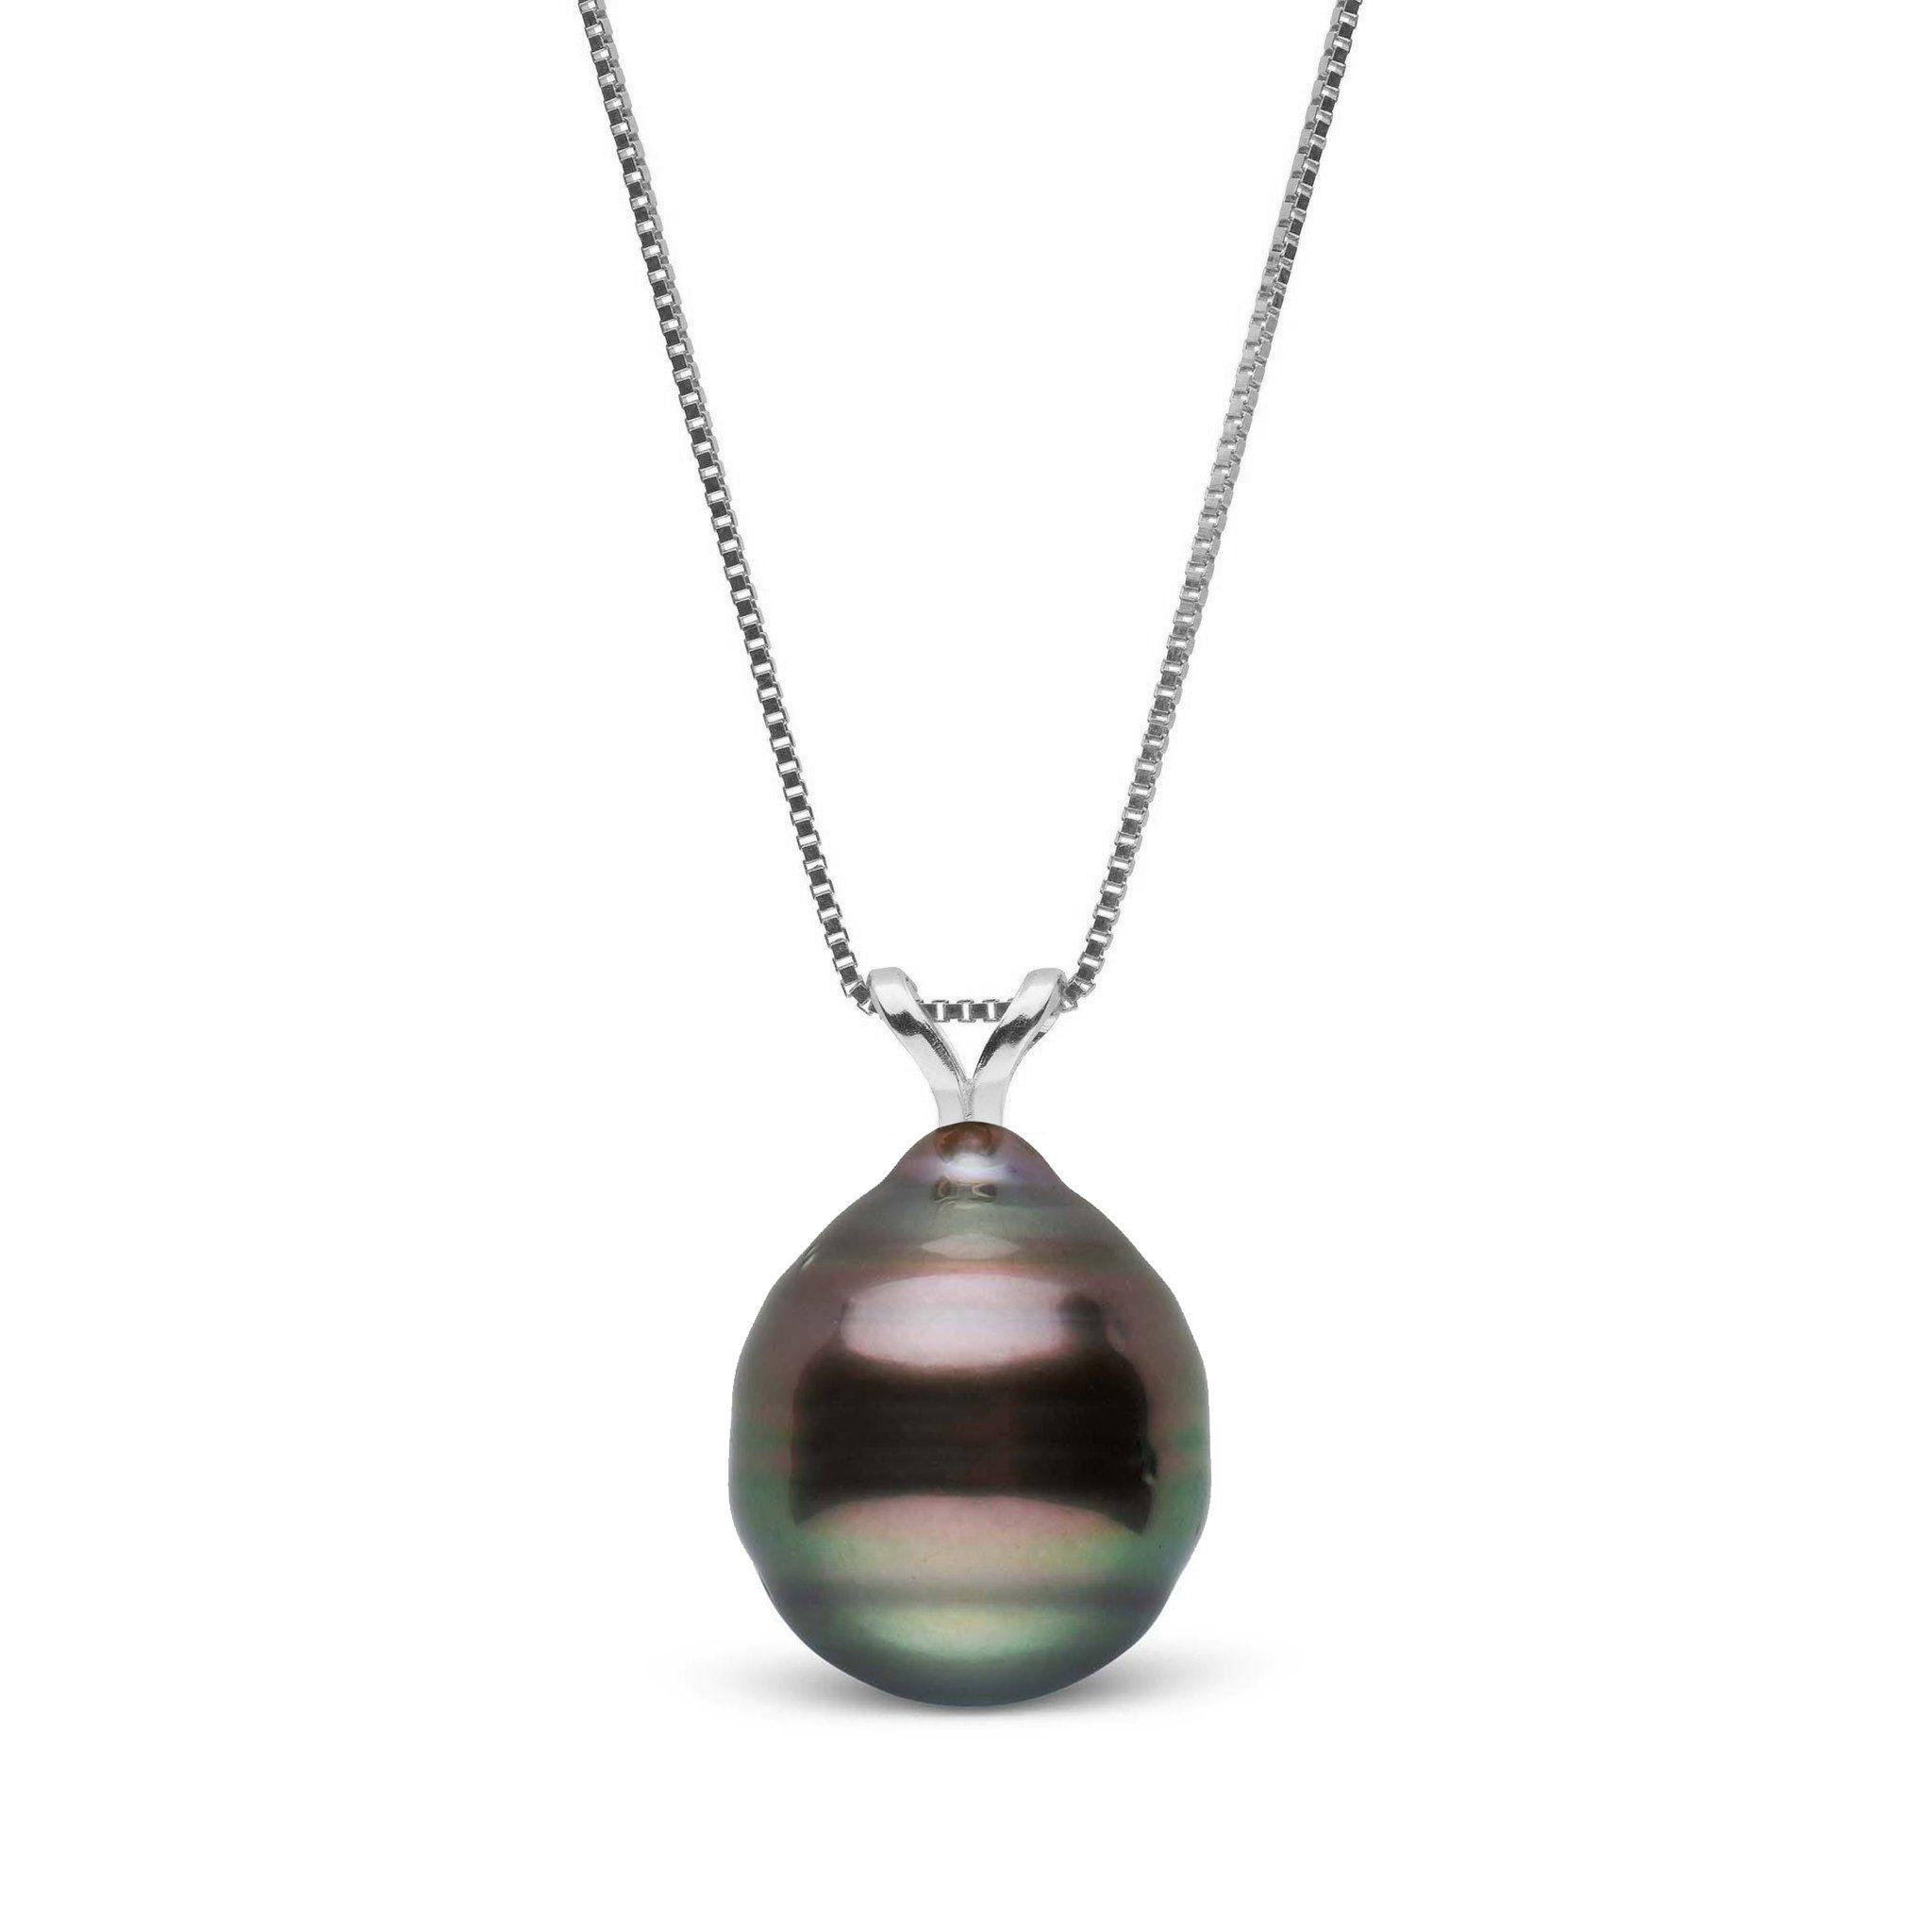 Unity Collection 8.0-9.0 mm Baroque Tahitian Pearl Pendant